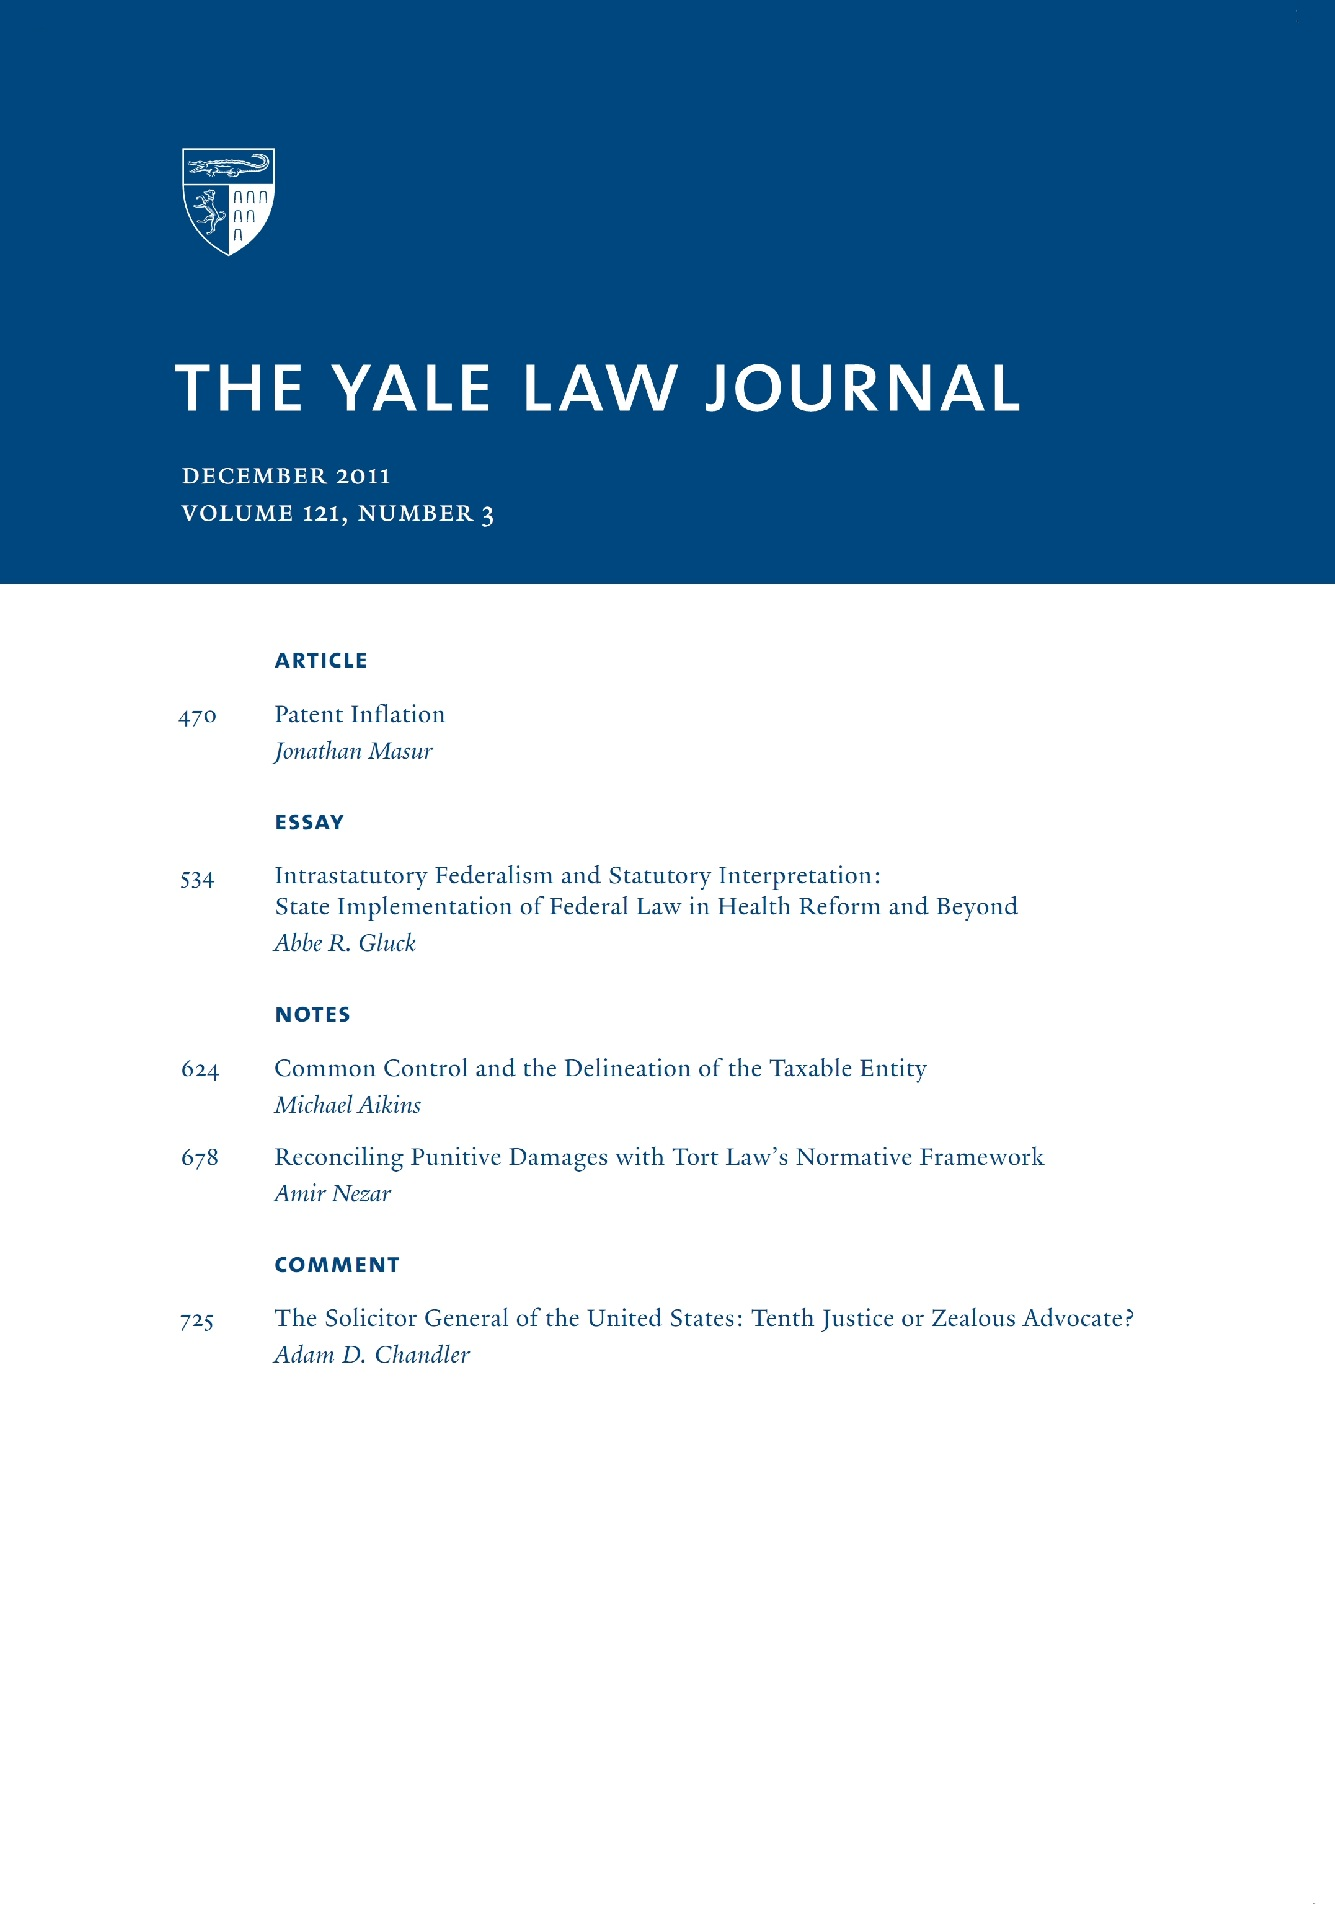 yale law journal s issue no masur on patent yale law journal s 2011 issue no 3 masur on patent inflation and gluck on federalism in health reform